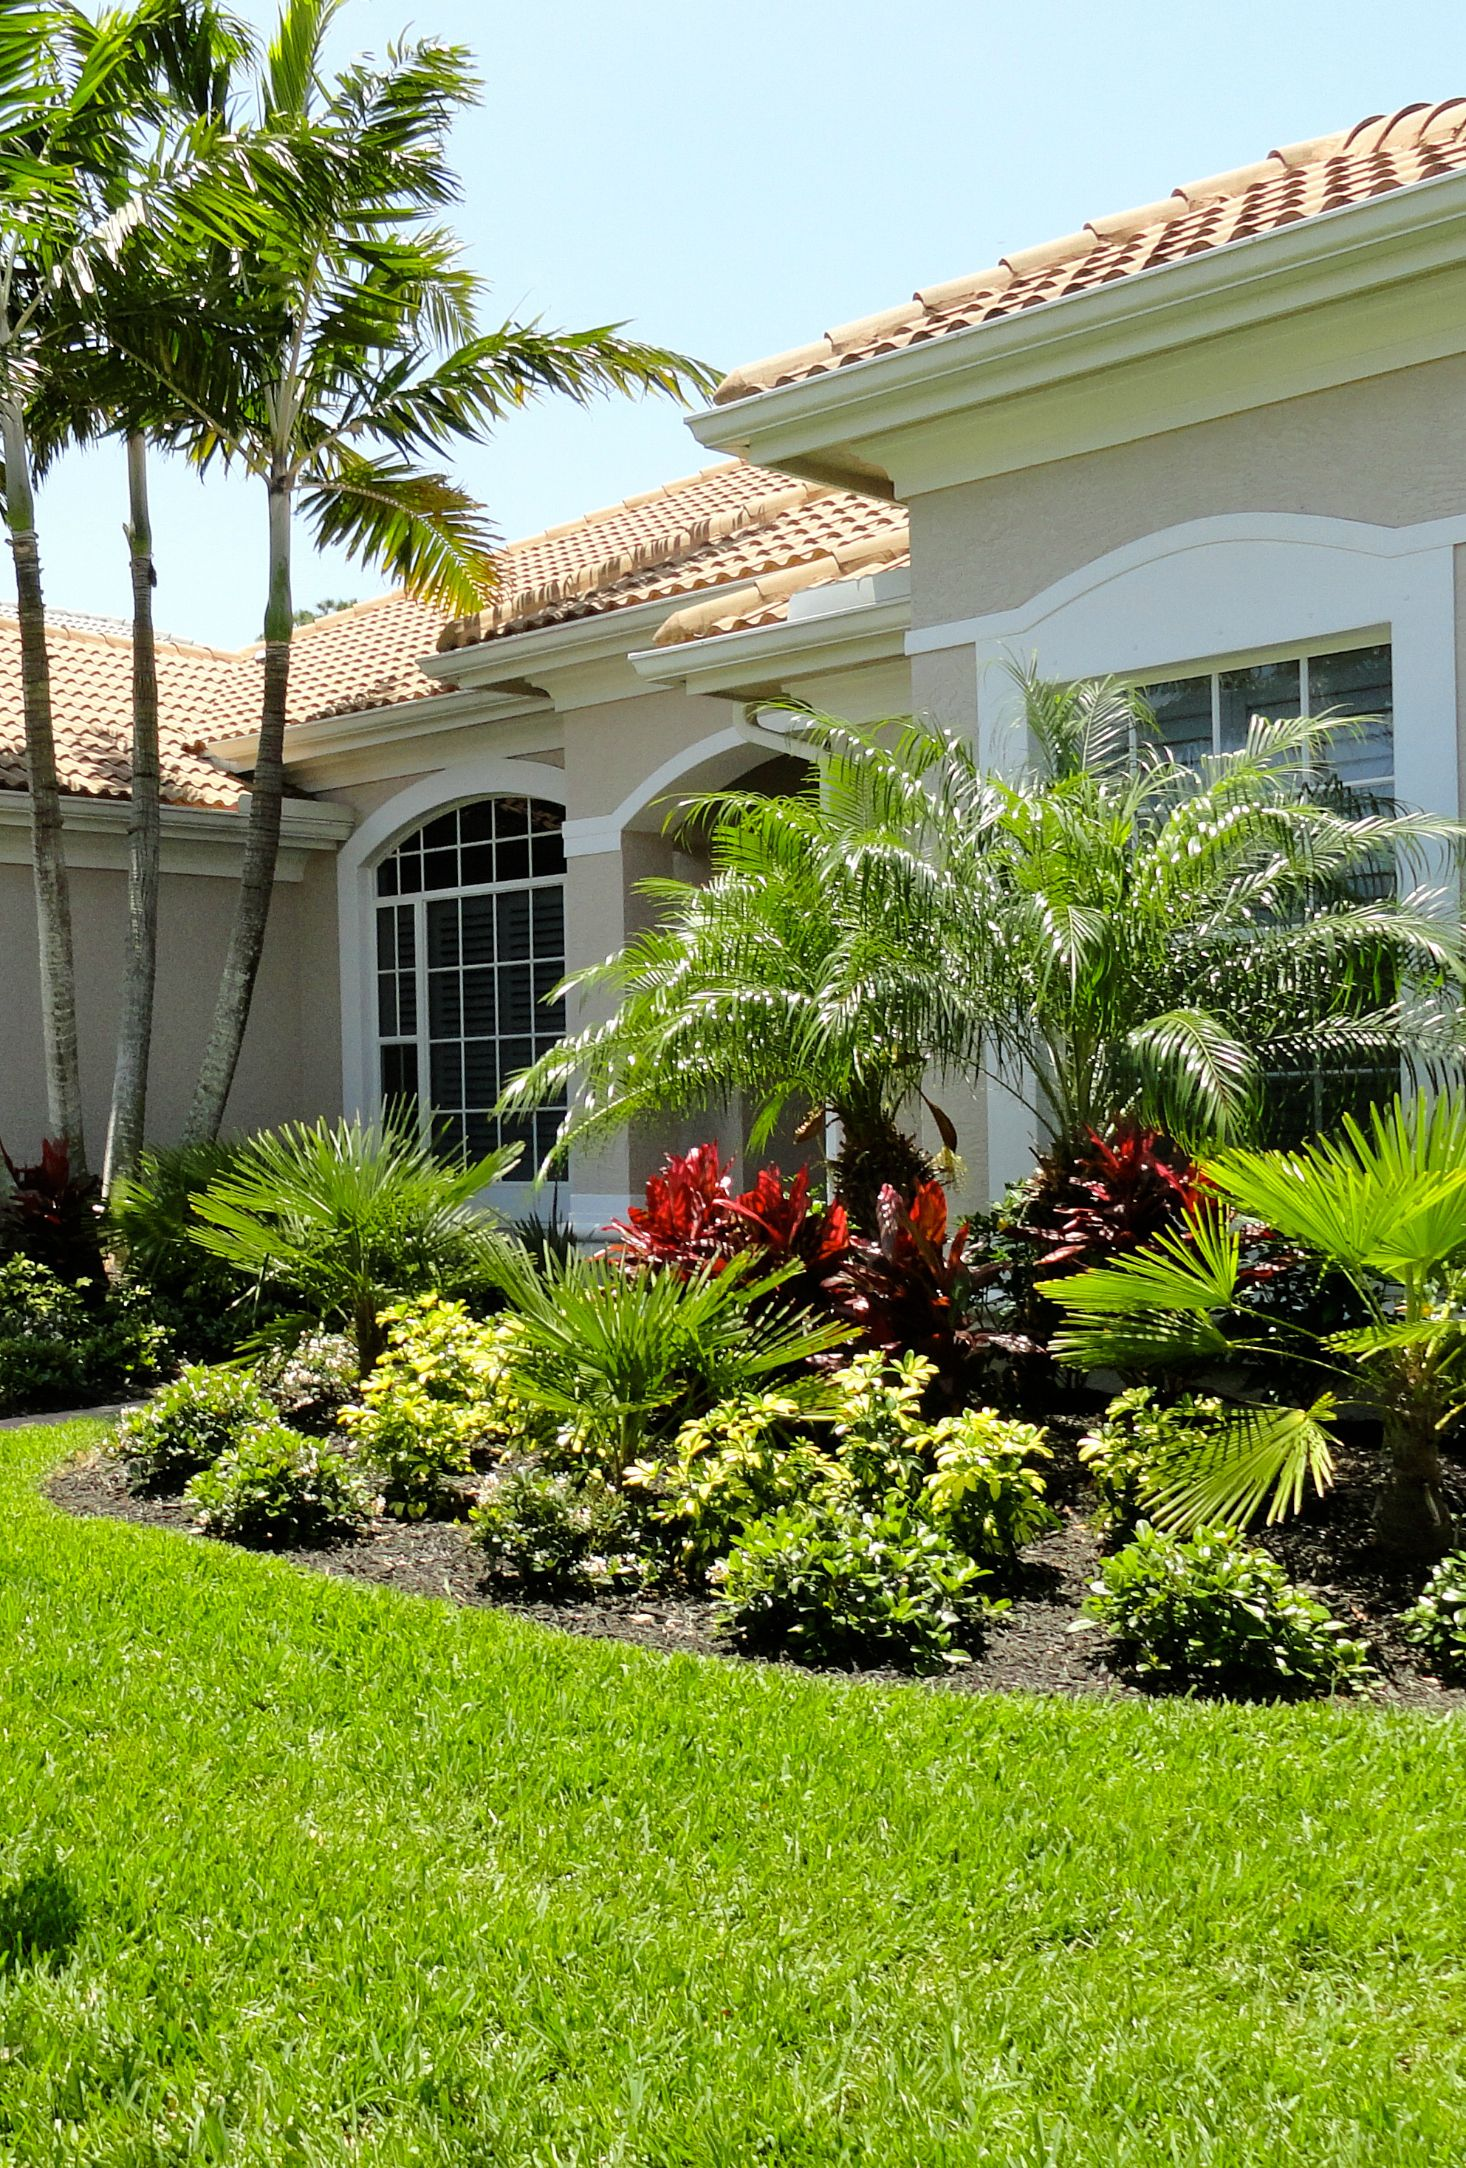 . Popular Backyard Landscape Design for an Appealing ... on Tropical Landscaping Ideas For Small Yards id=91105